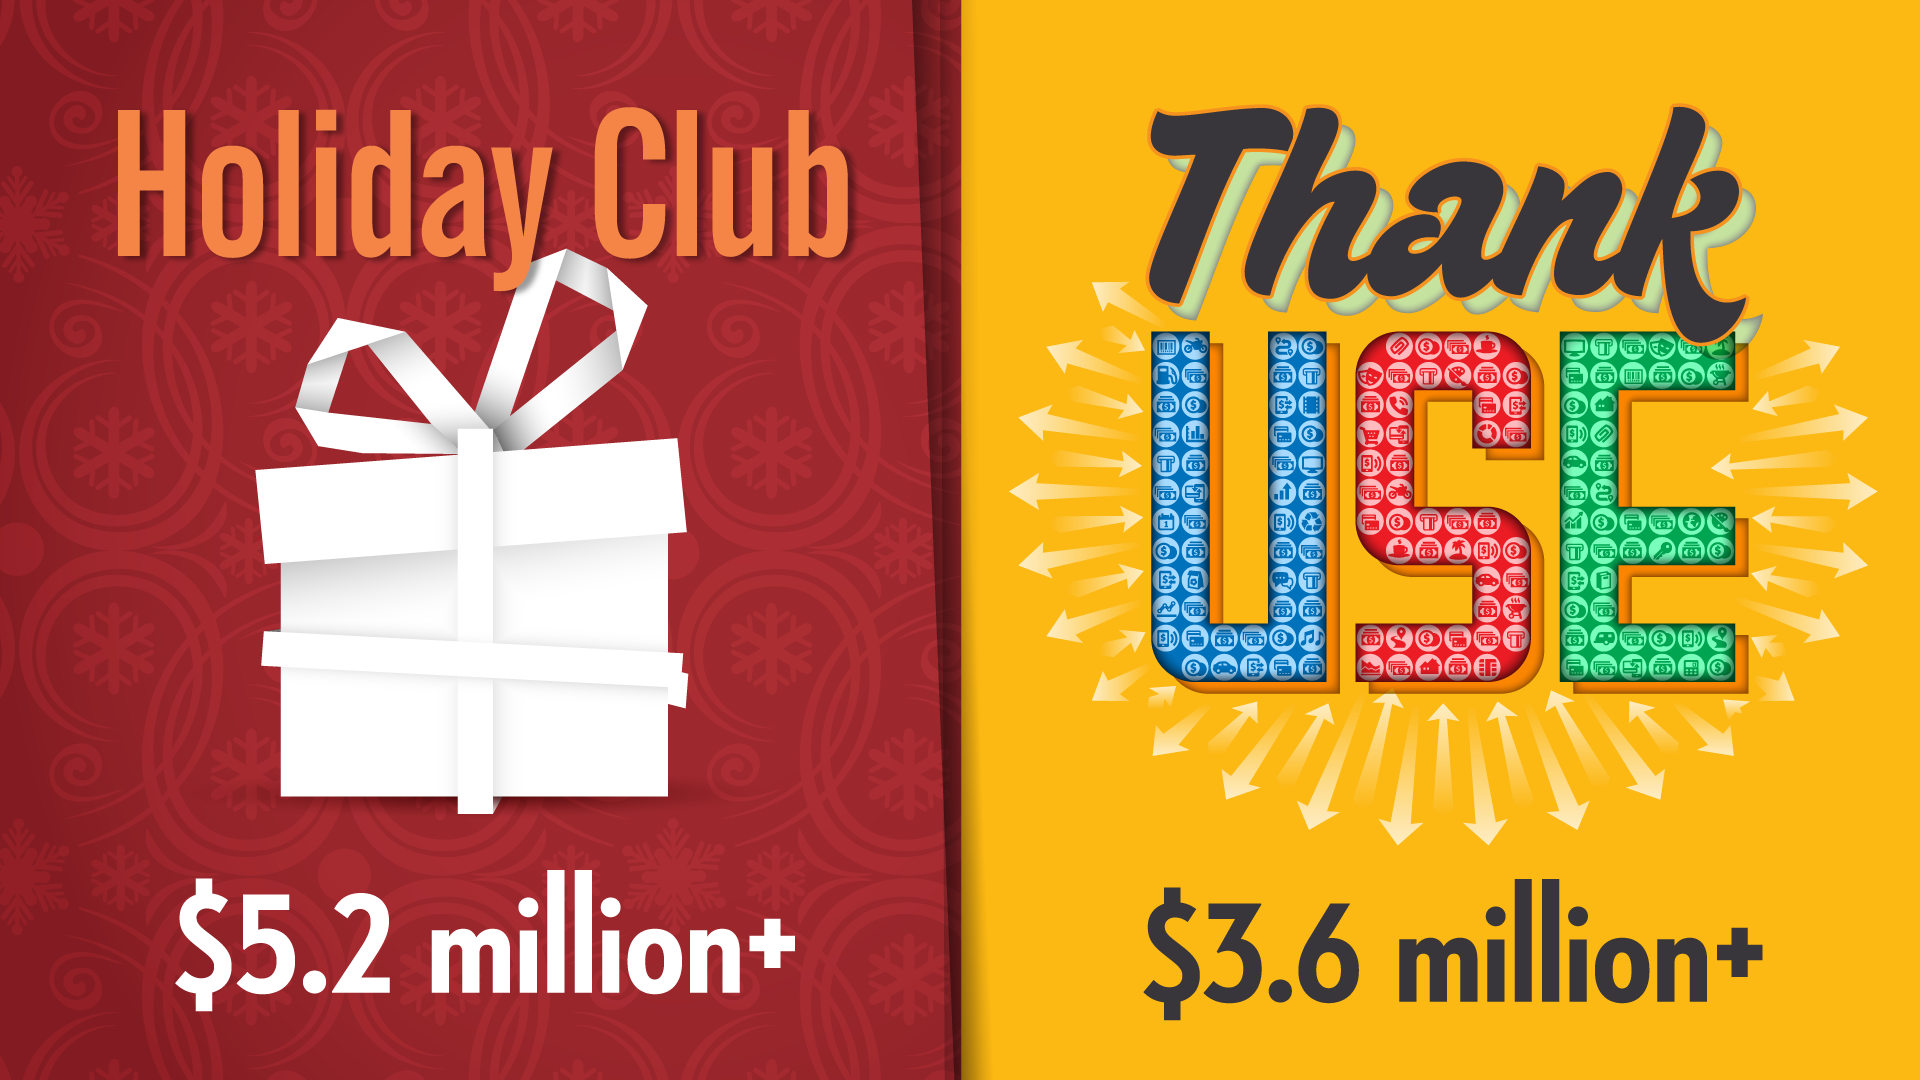 In October, Dupaco members boosted their financial well-being by more than $8.8 million through the payouts of Dupaco's Holiday Club savings accounts and Thank Use.